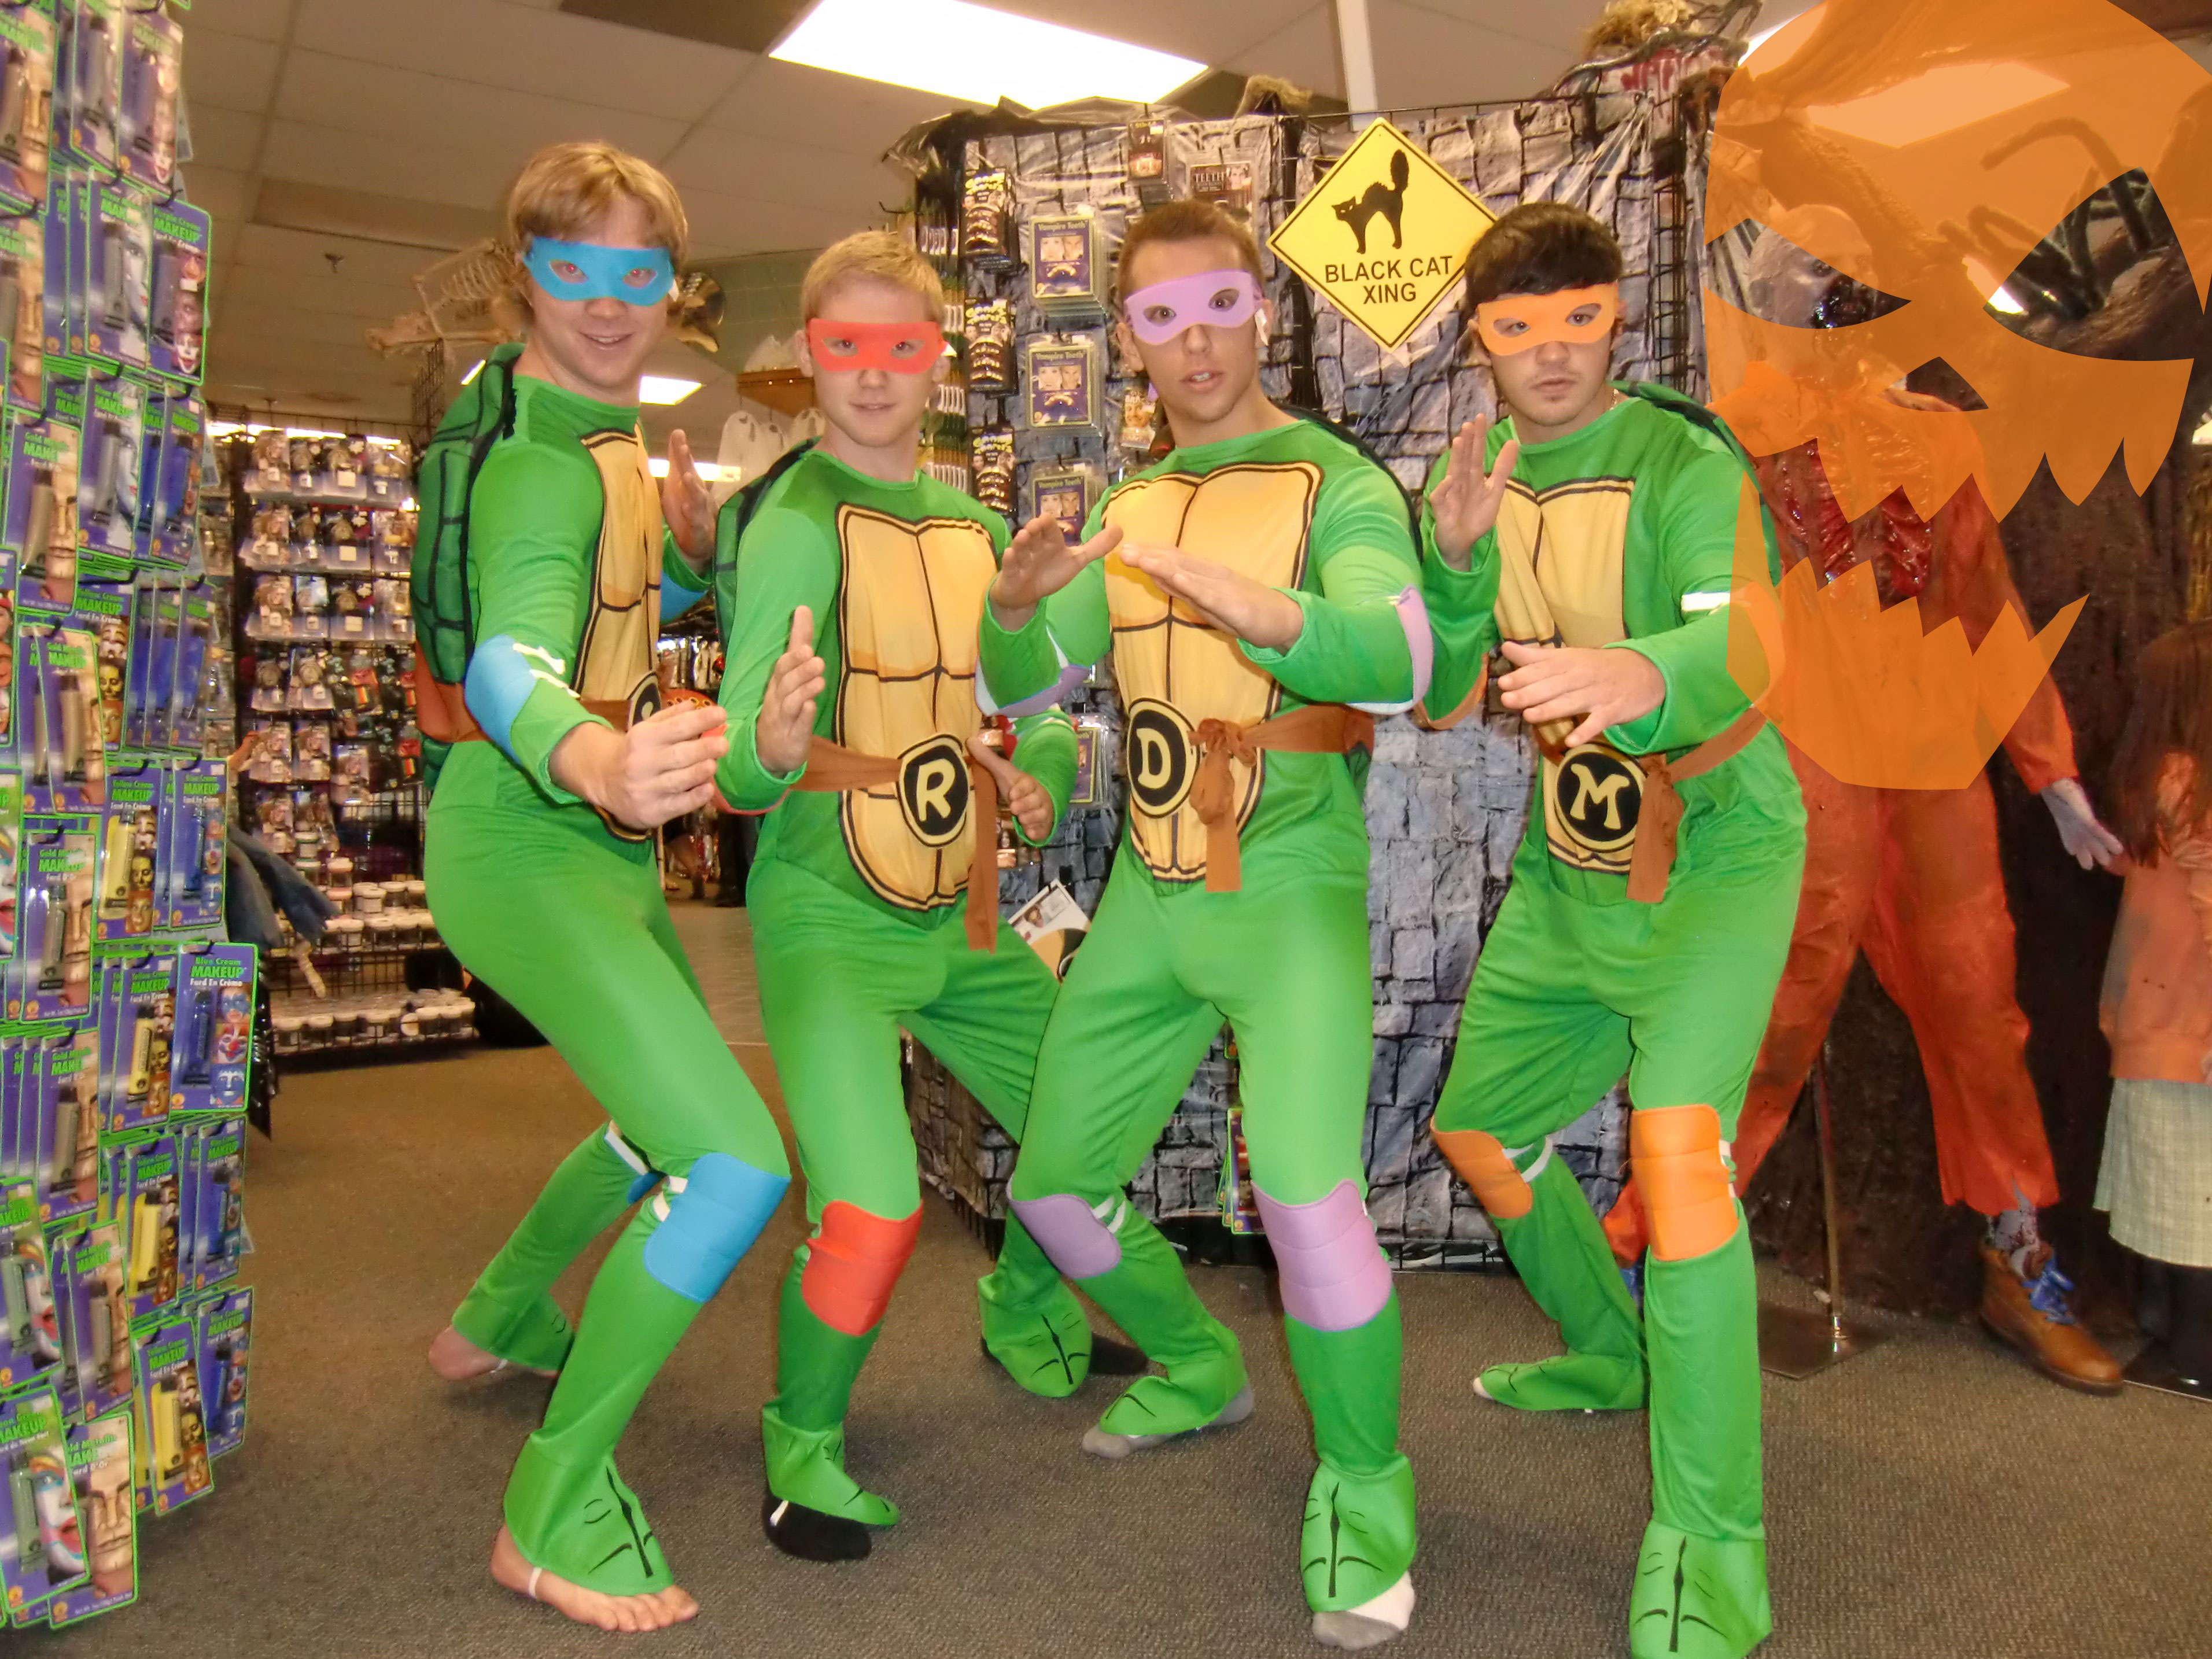 win 2 tickets to teenage mutant ninja turtles in theatres this month!